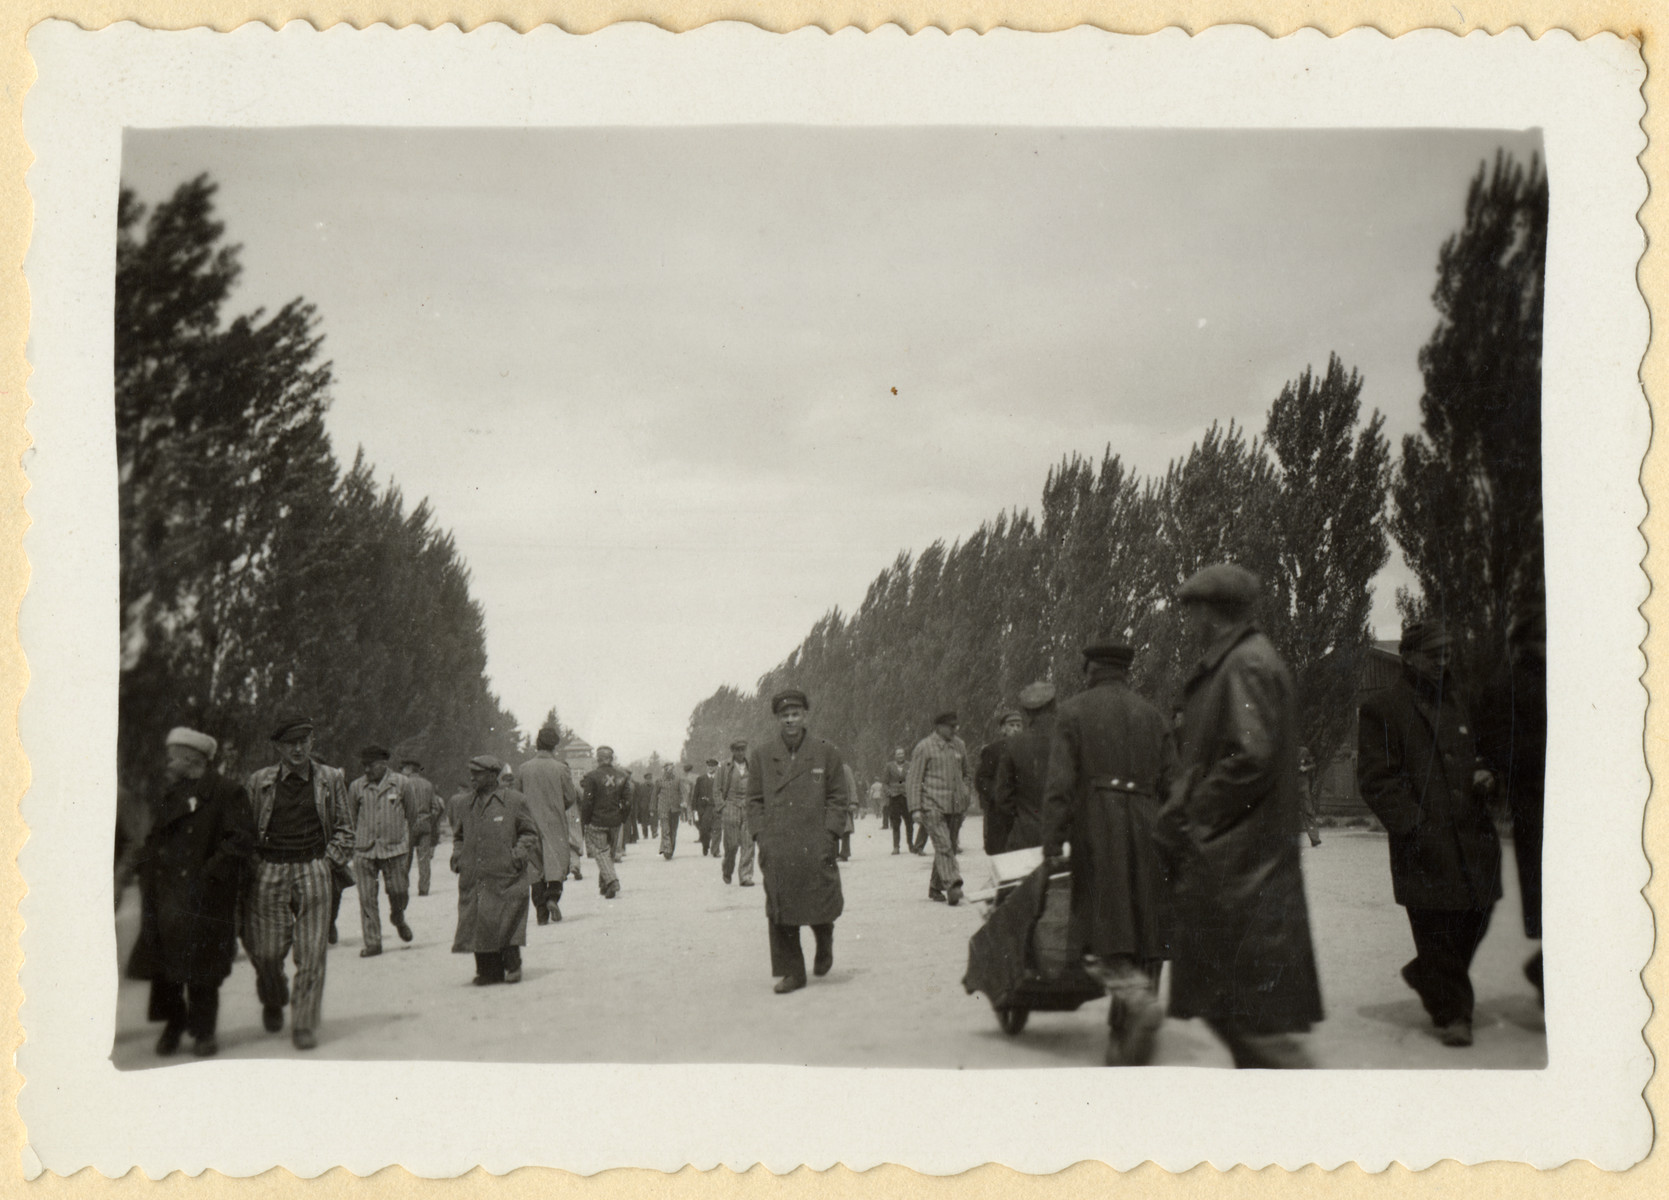 Survivors walk through the main open space of the Dachau concentration camp shortly after liberation.